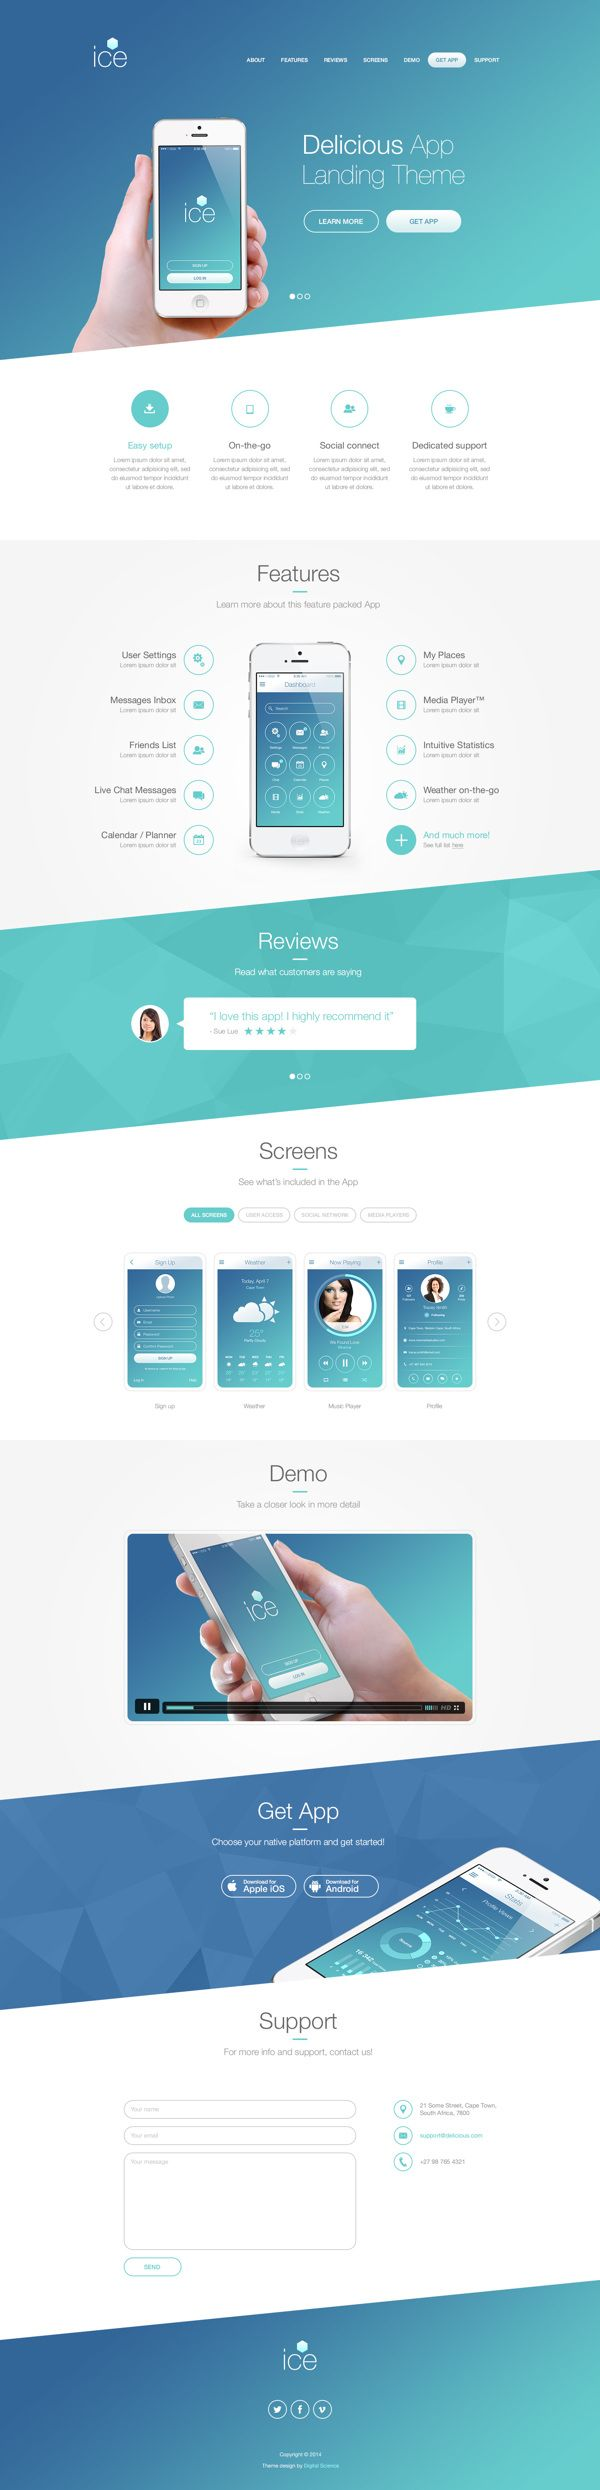 Delicious App Landing HTML Theme by Pierre Marais, via Behance